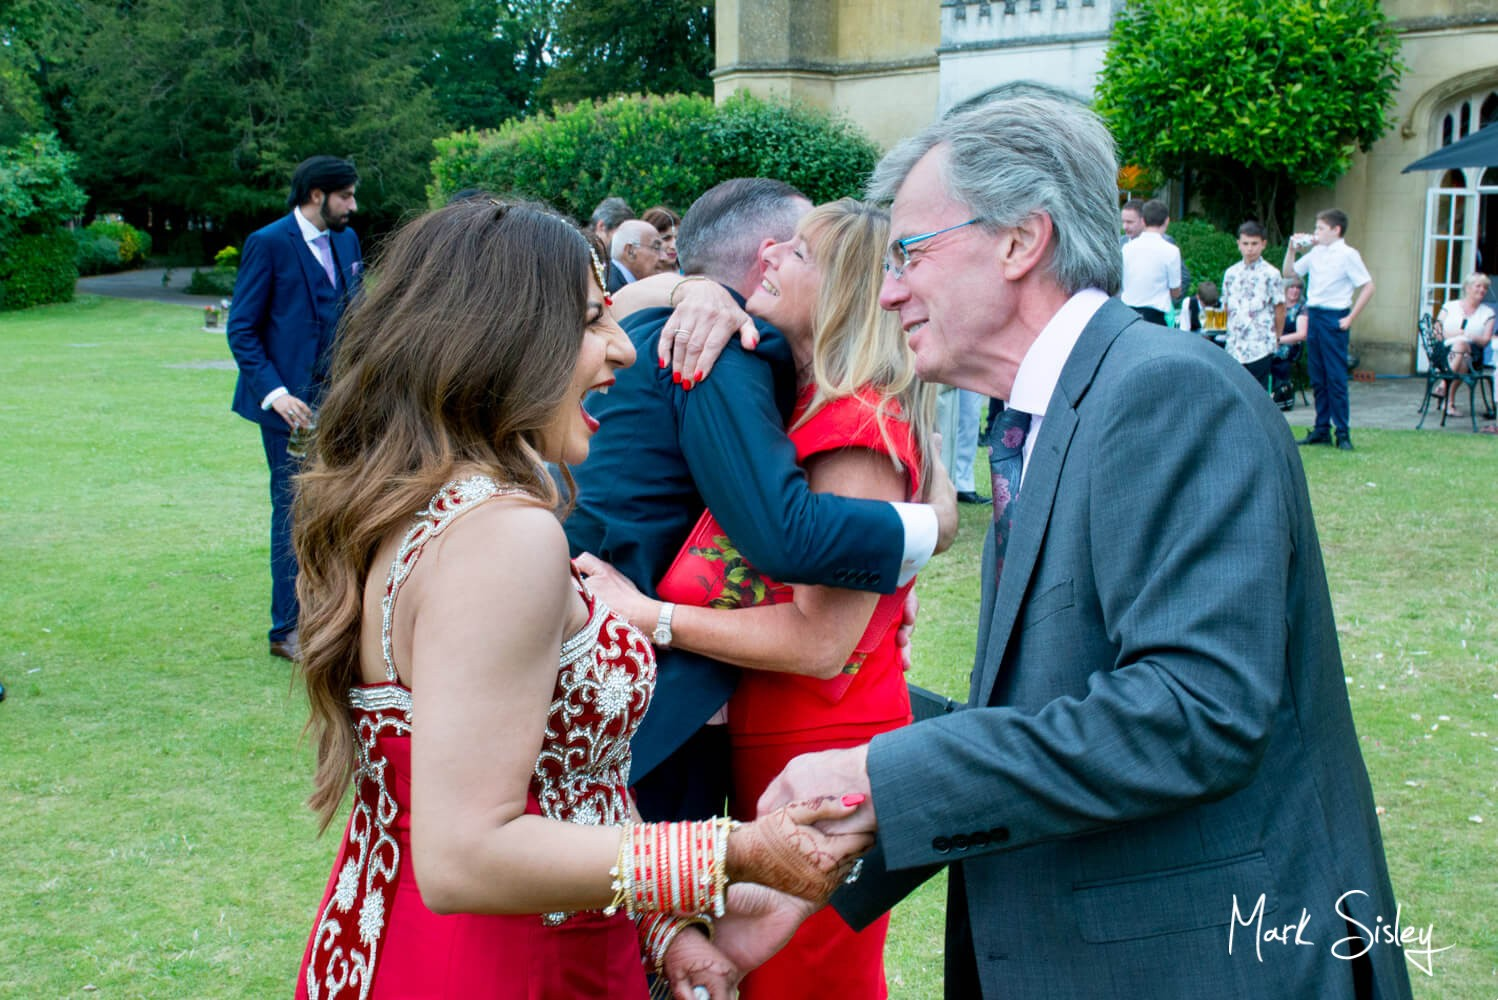 Missenden Abbey wedding blog - reportage Images in the gardens